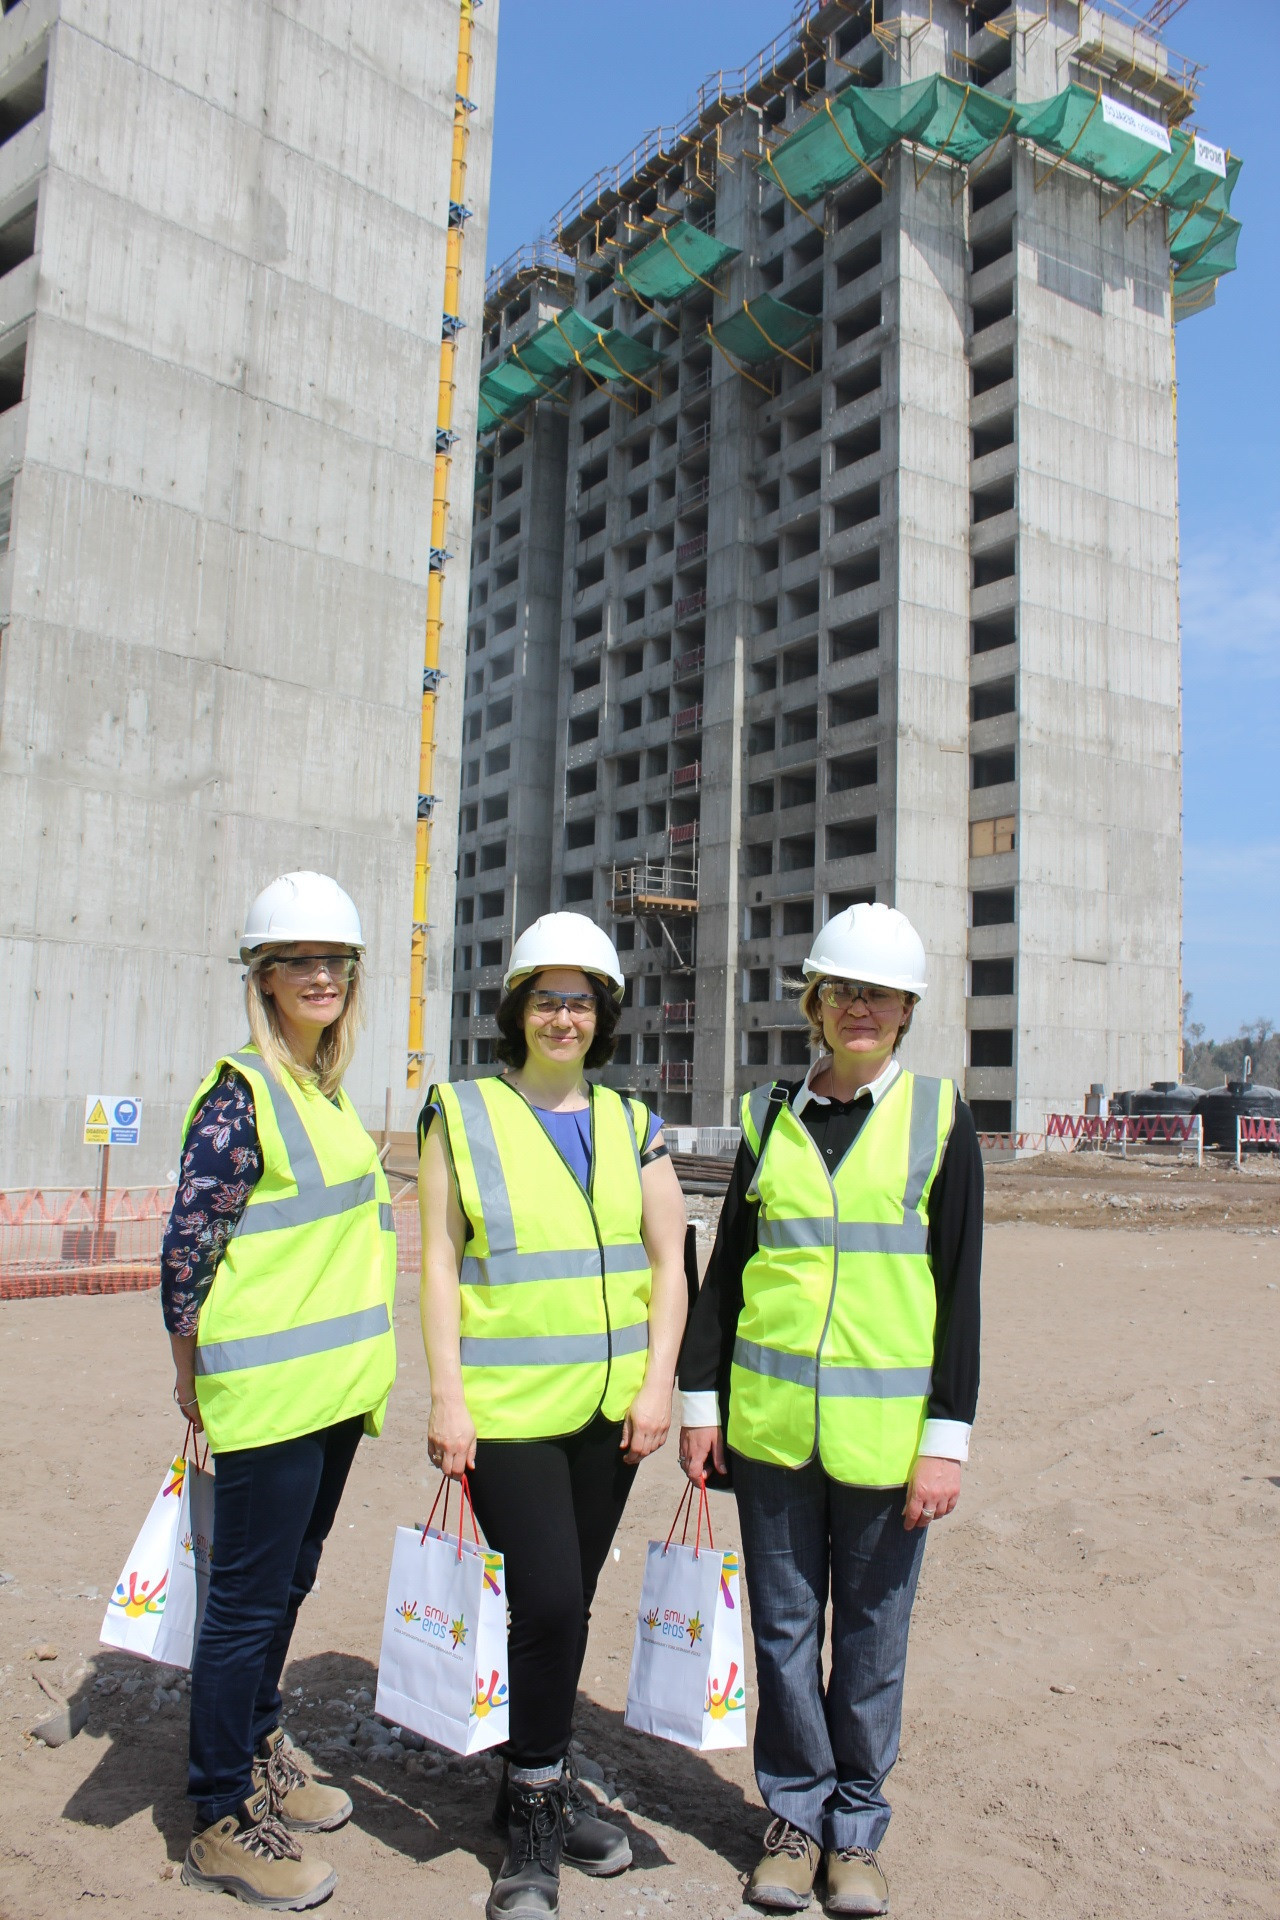 Director of international trade in Peru Francine Torbett, left, and the director general of the UK Department for International Trade Catherine Vaughan, centre, with Kate Harrison, right, at the Pan American Village ©Lima 2019